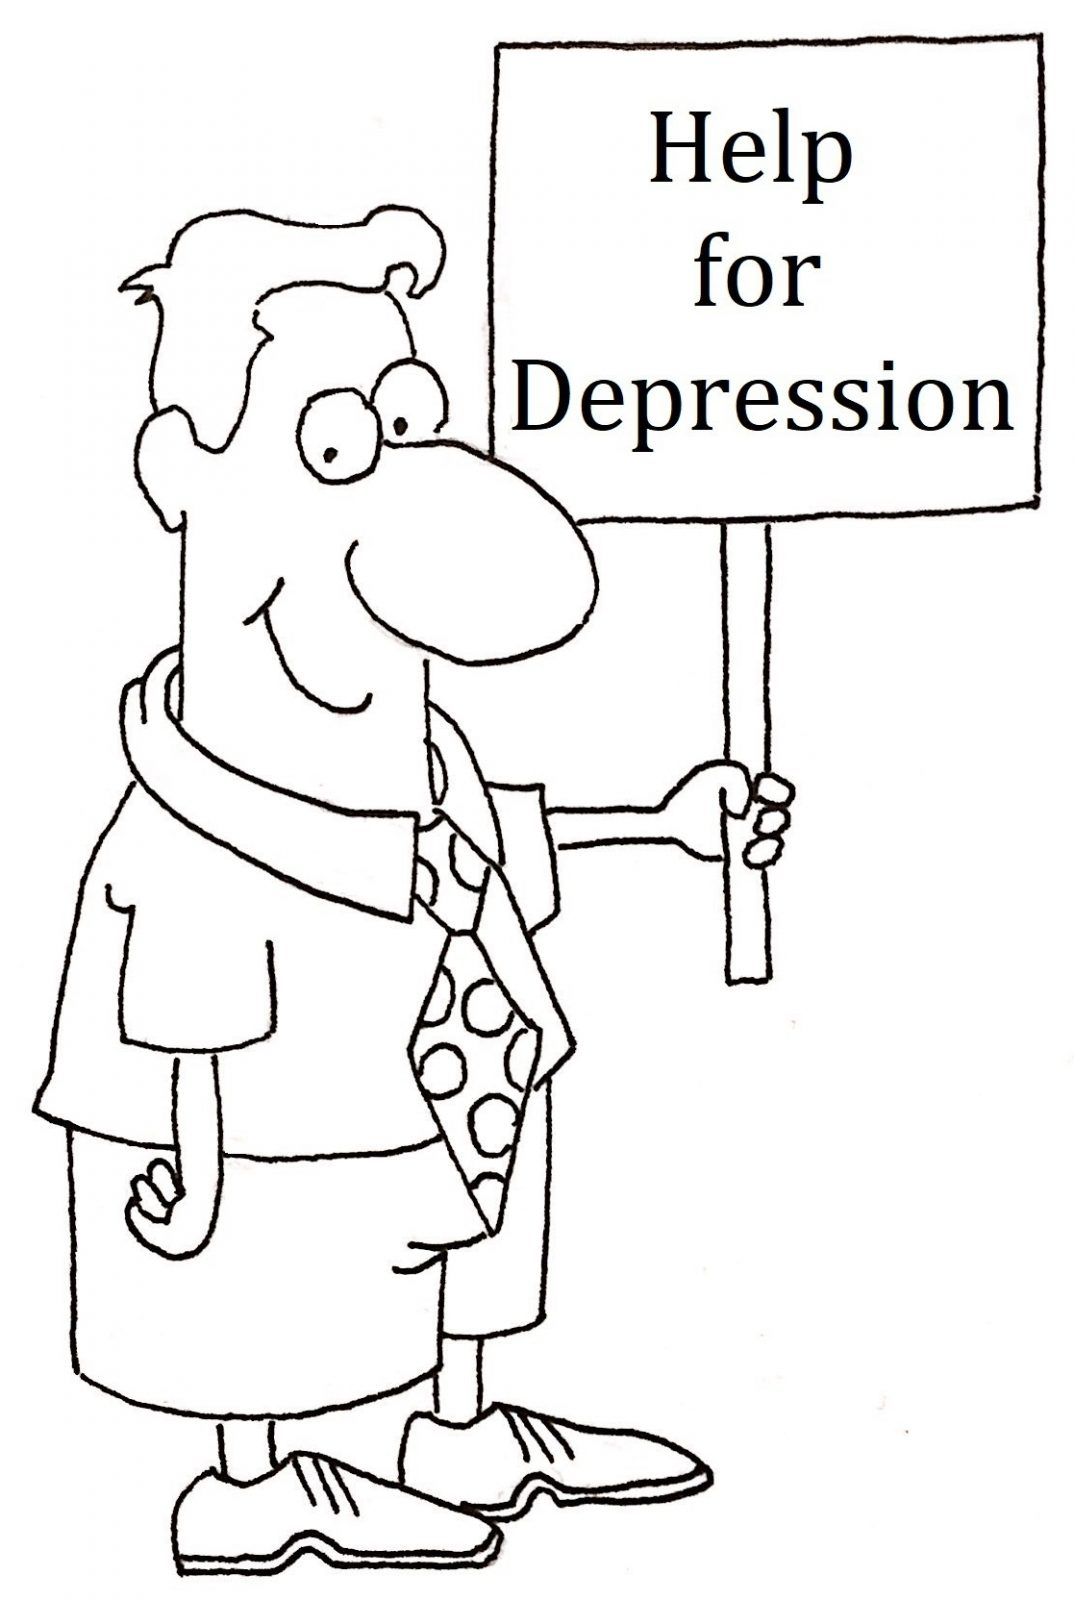 Help for depression